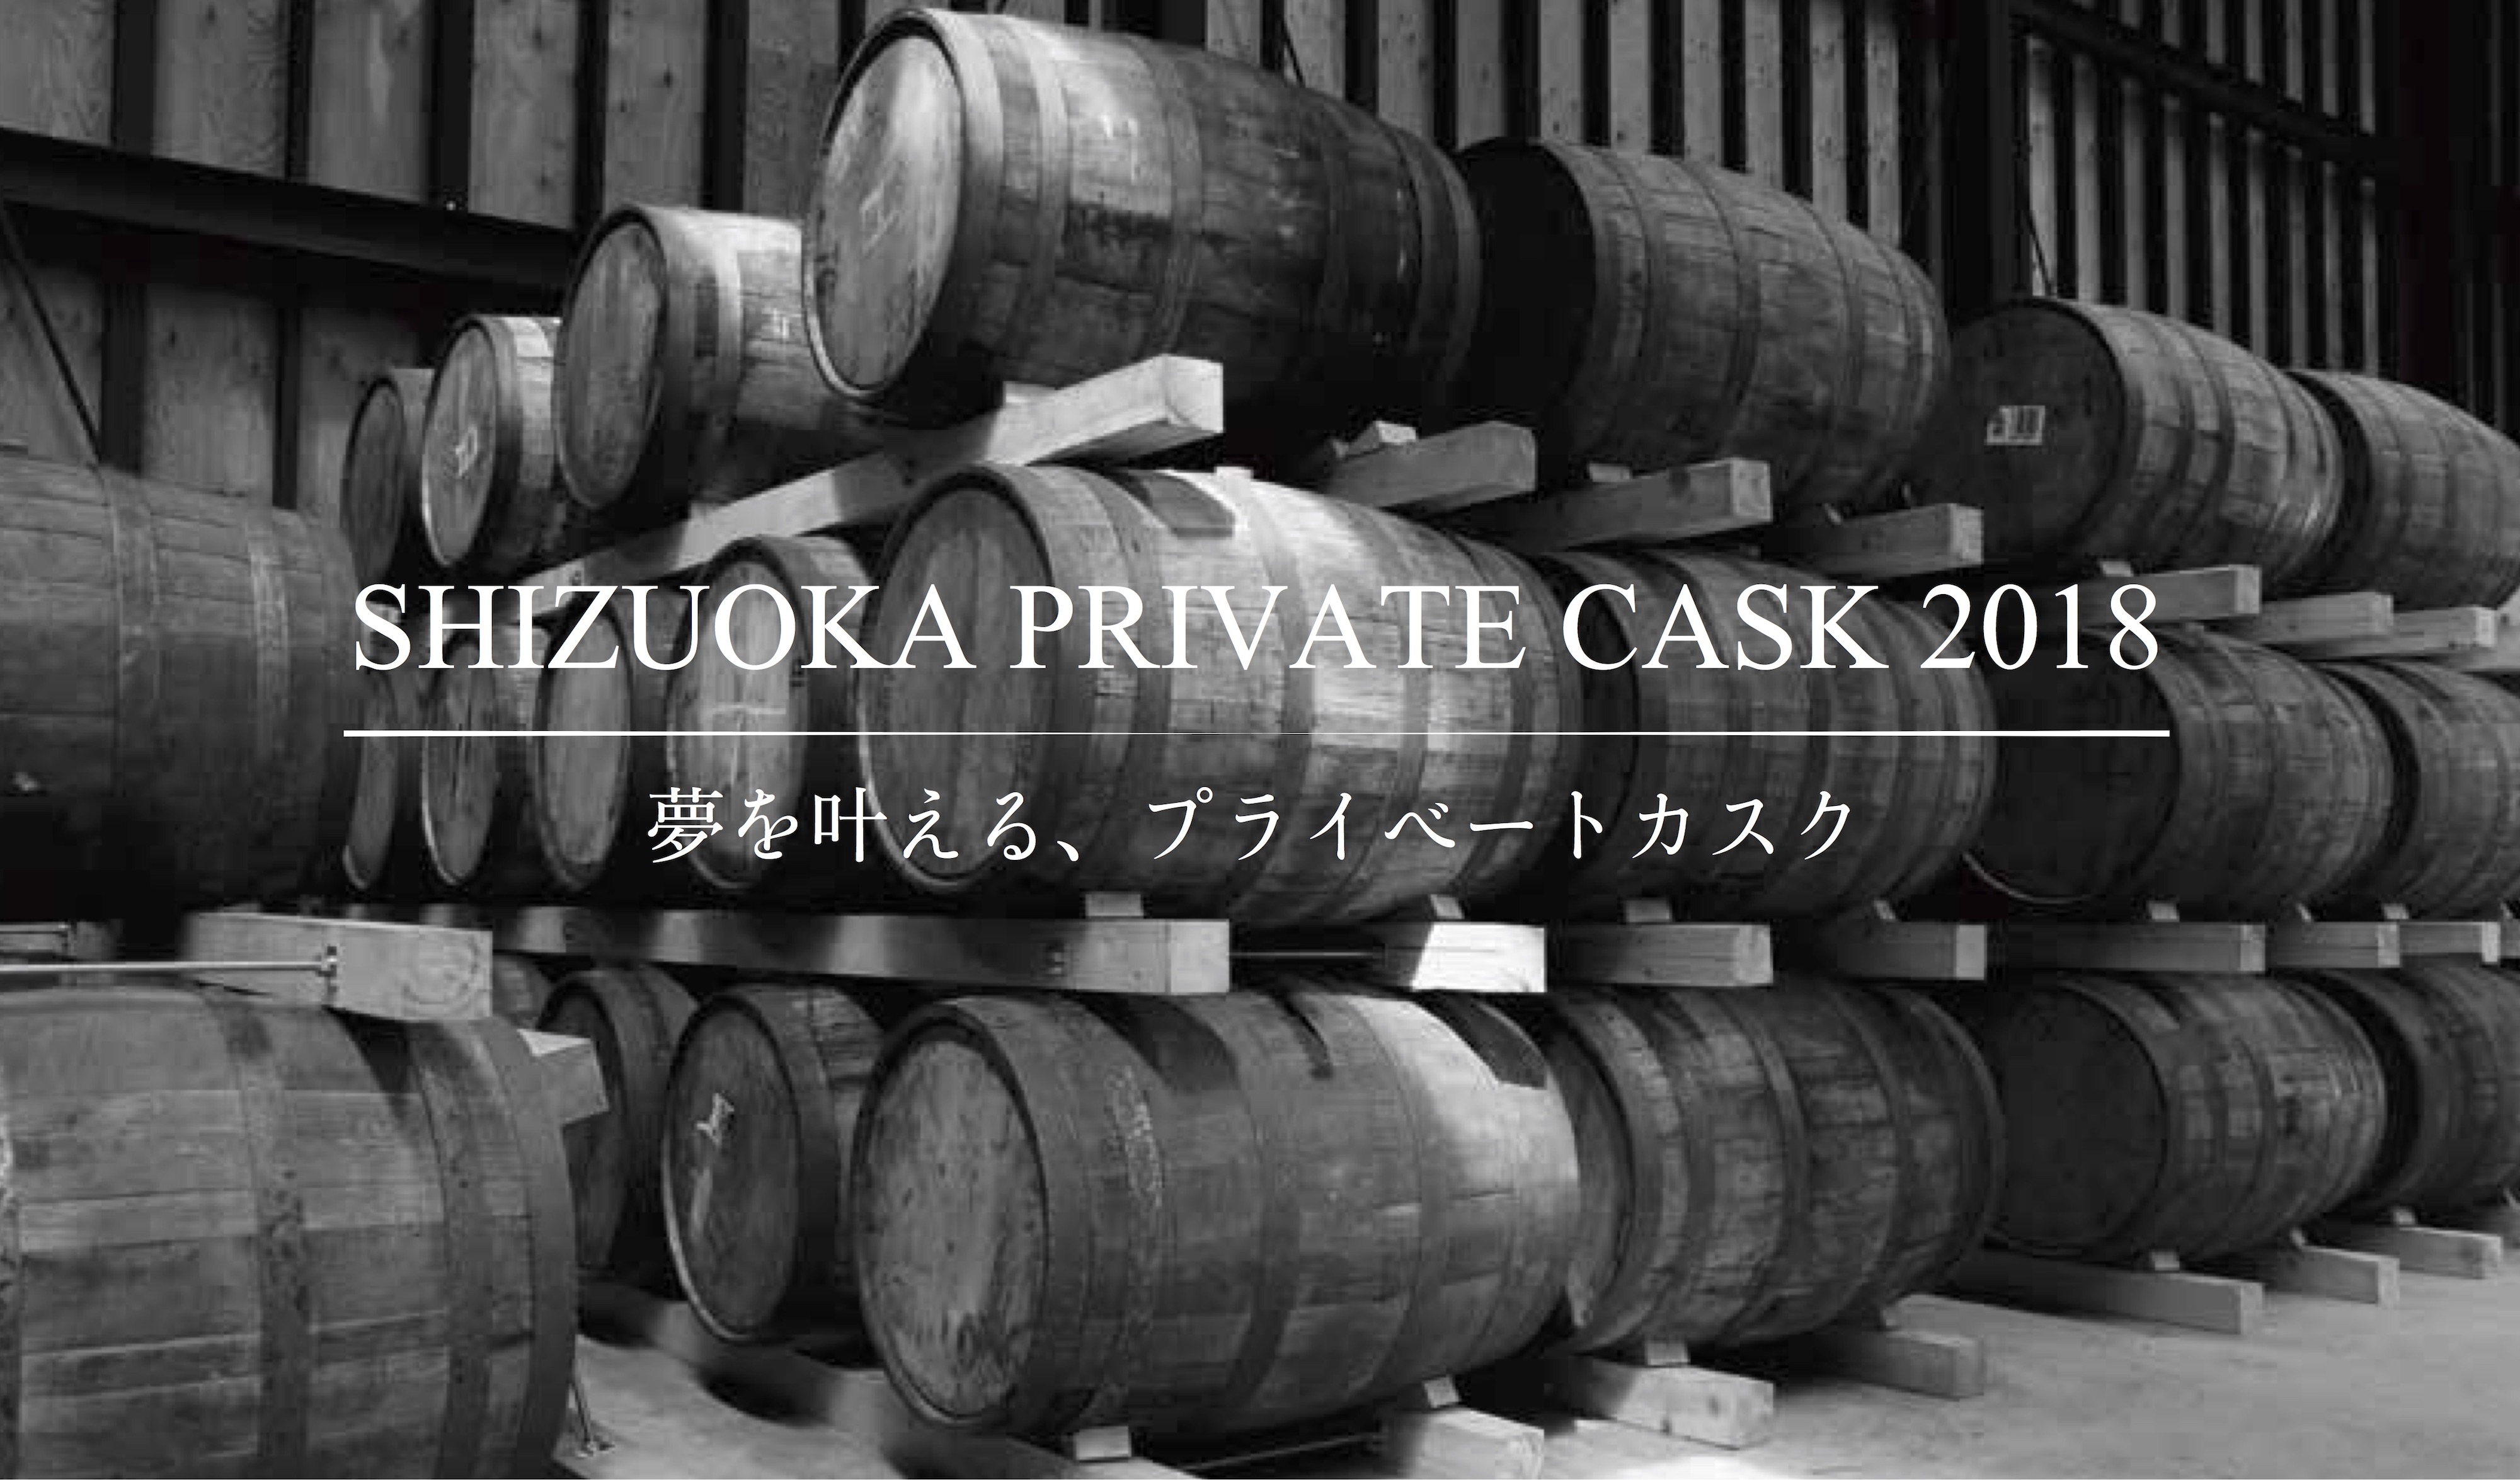 Caskoffer2018酒販店様へご案内のコピー